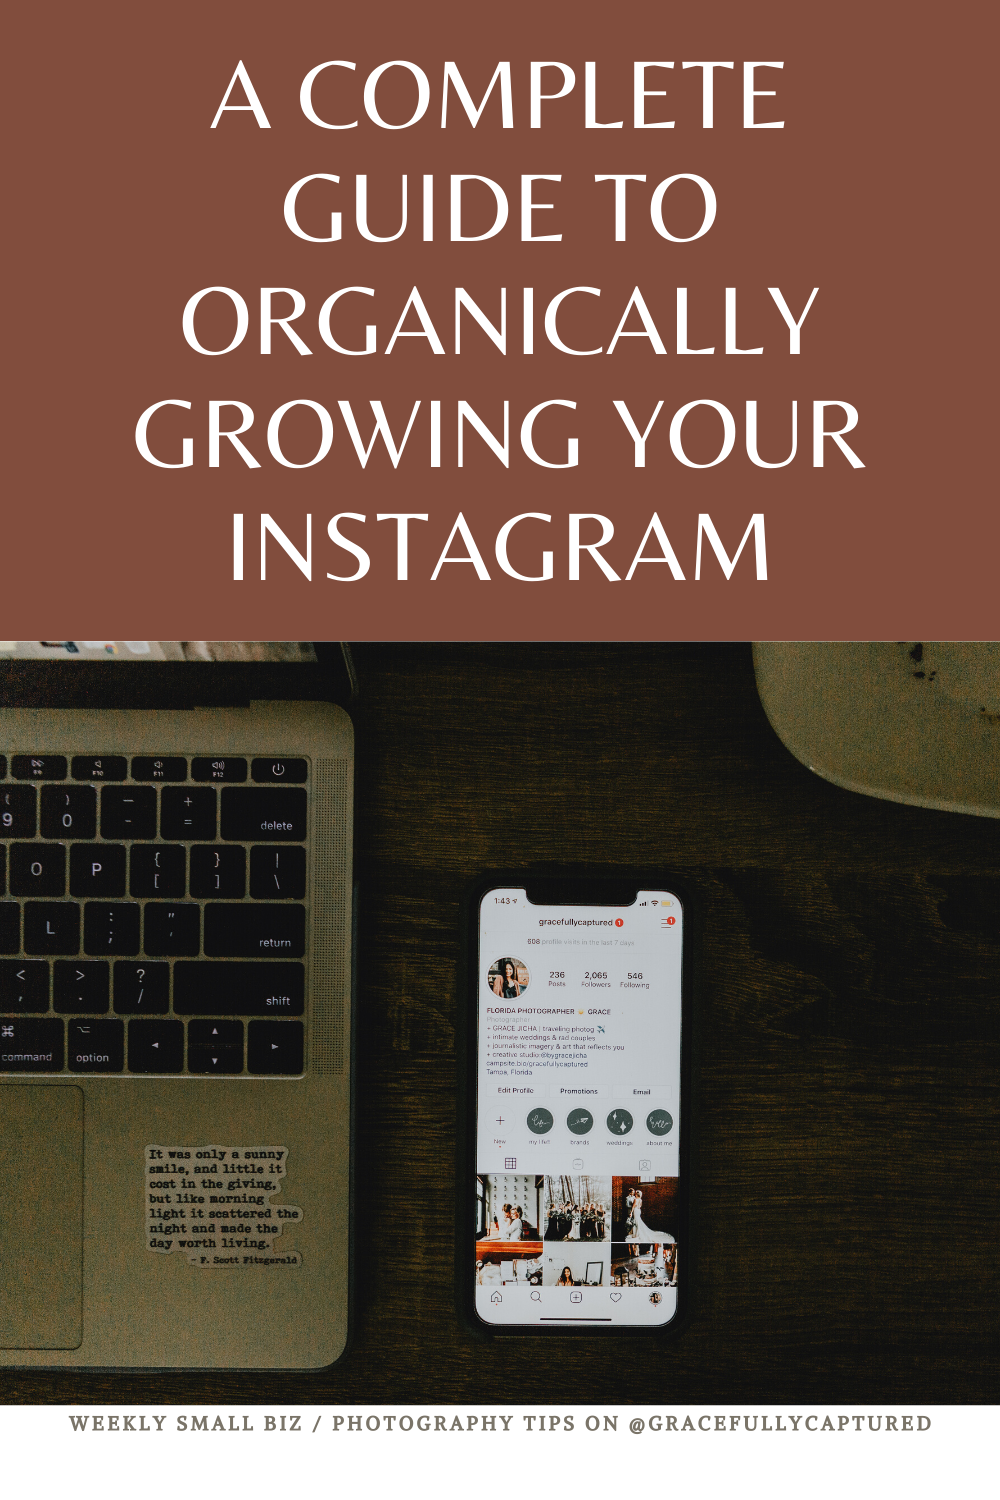 a14f28aa0e900ebbf269dd3f412ef236 - How To Get More Instagram Followers As A Photographer